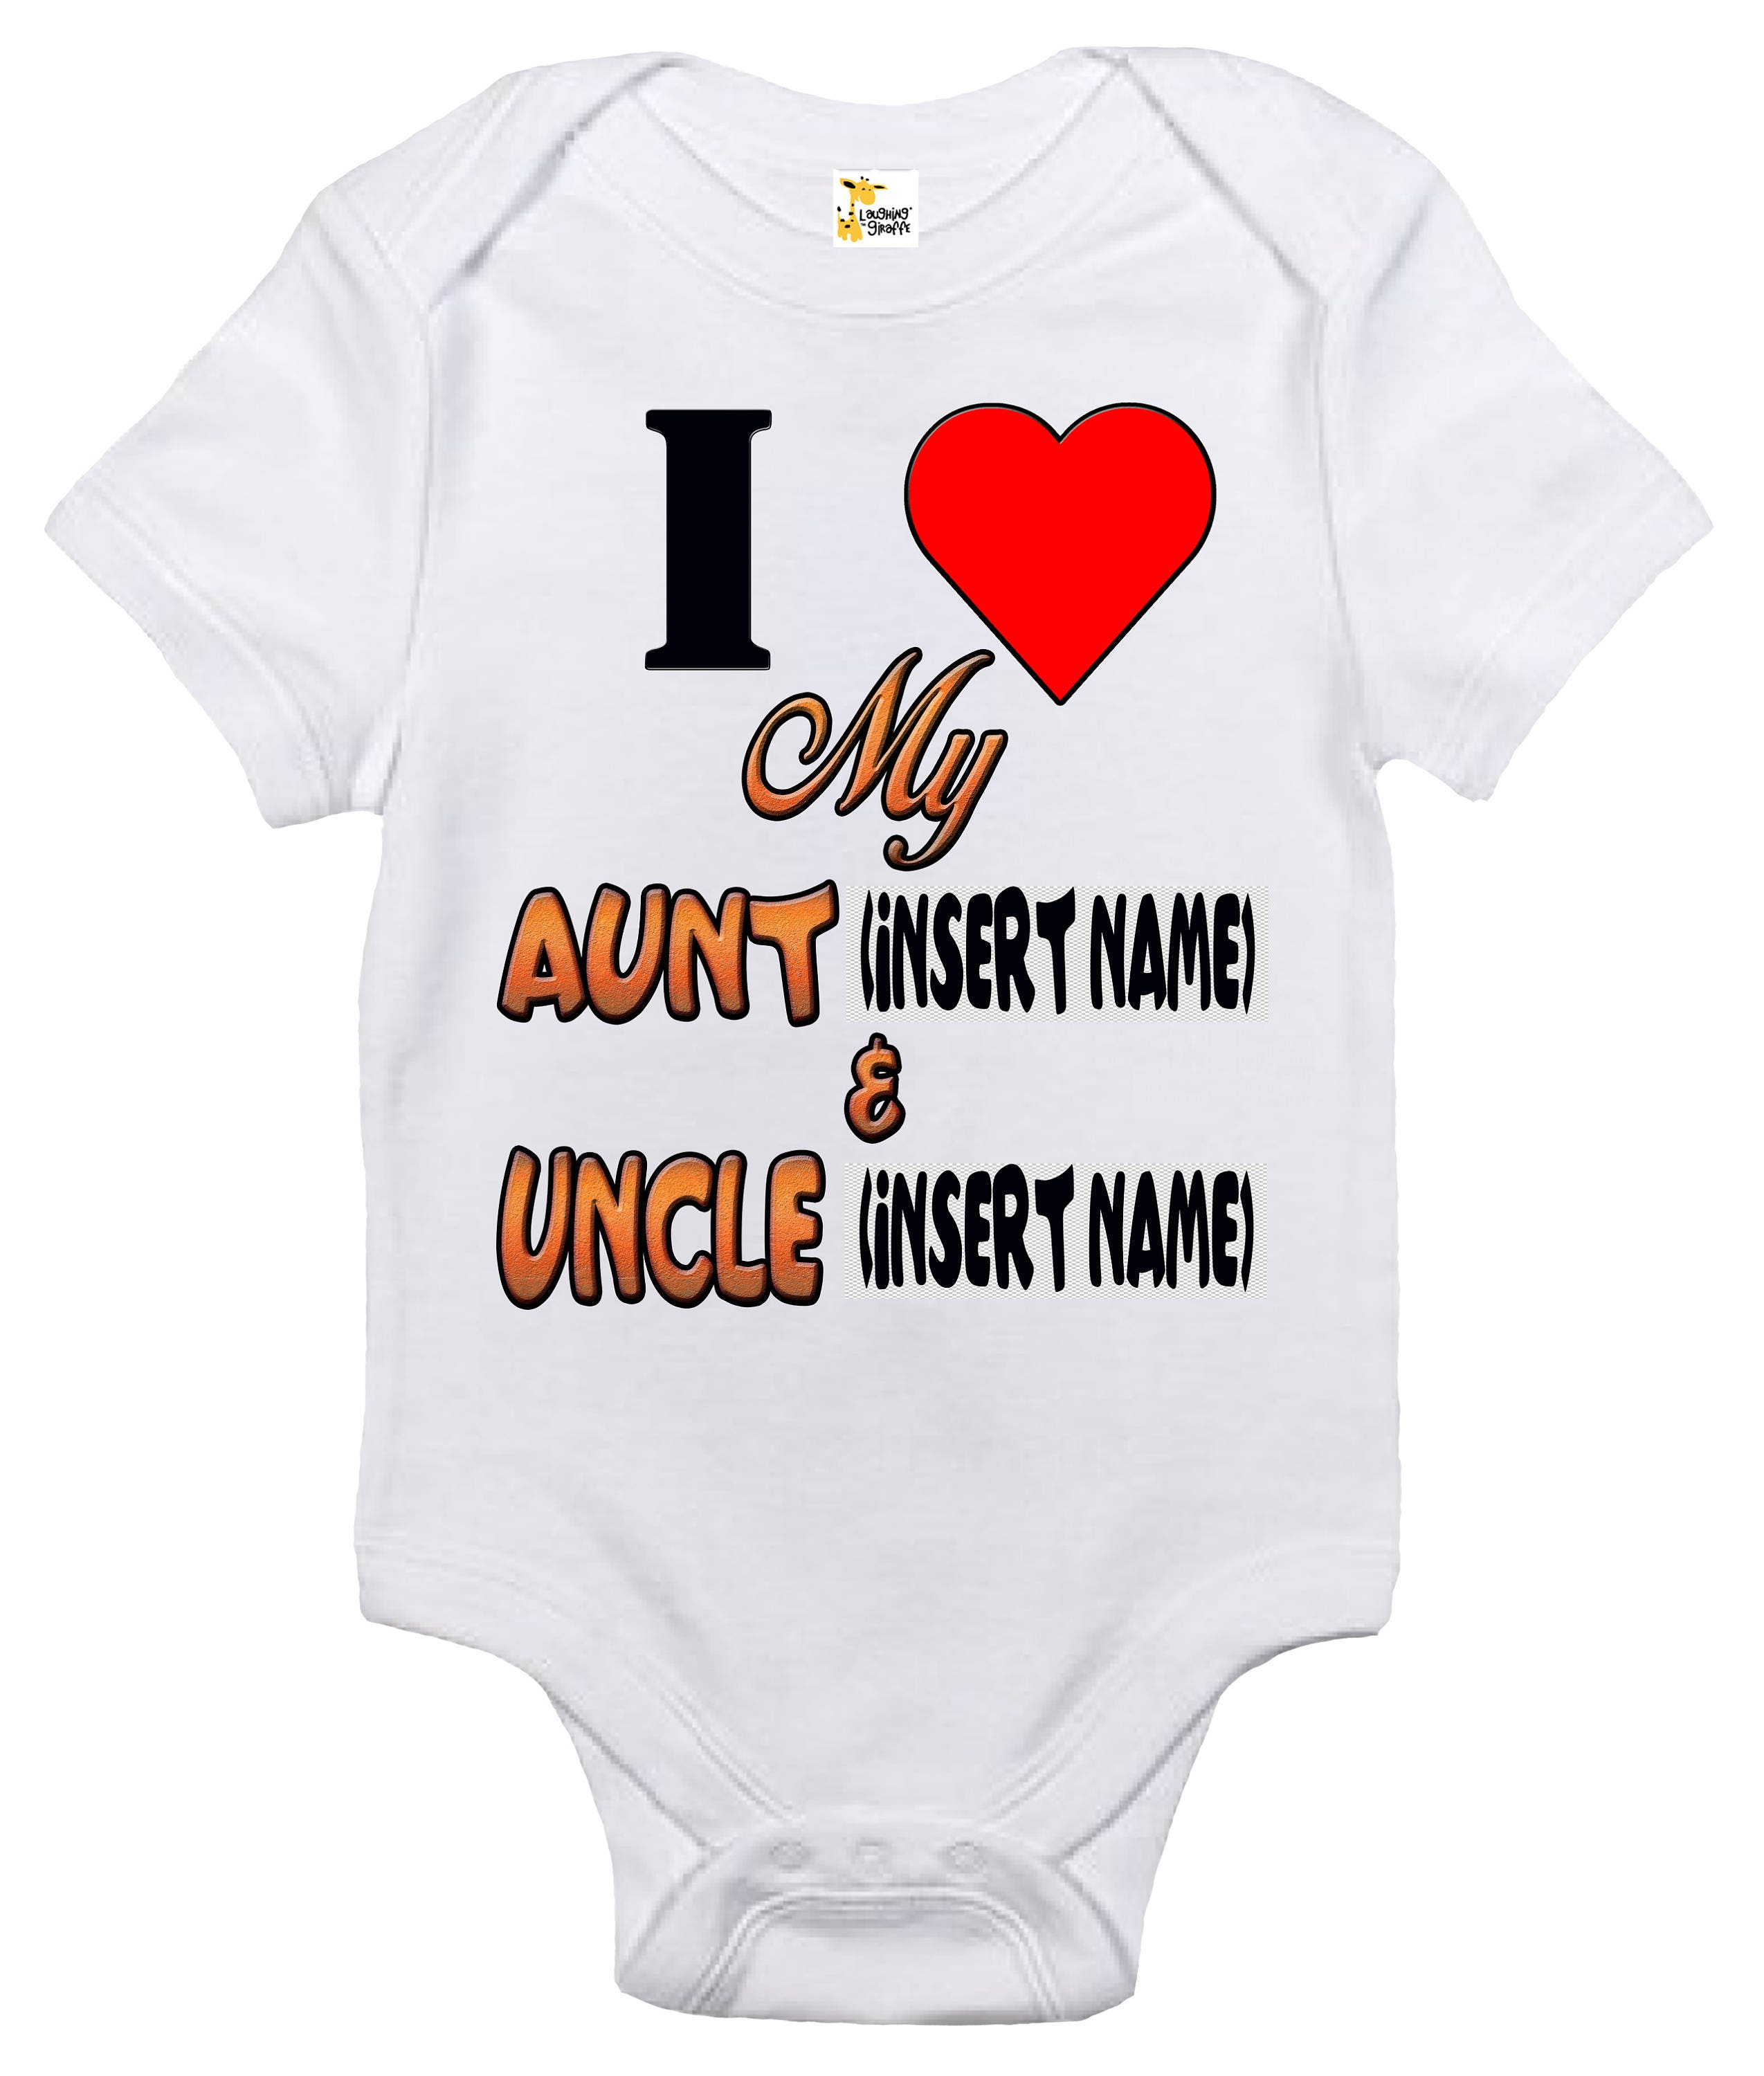 Baby Bodysuit Custom Personalized I Love My Aunt and Uncle